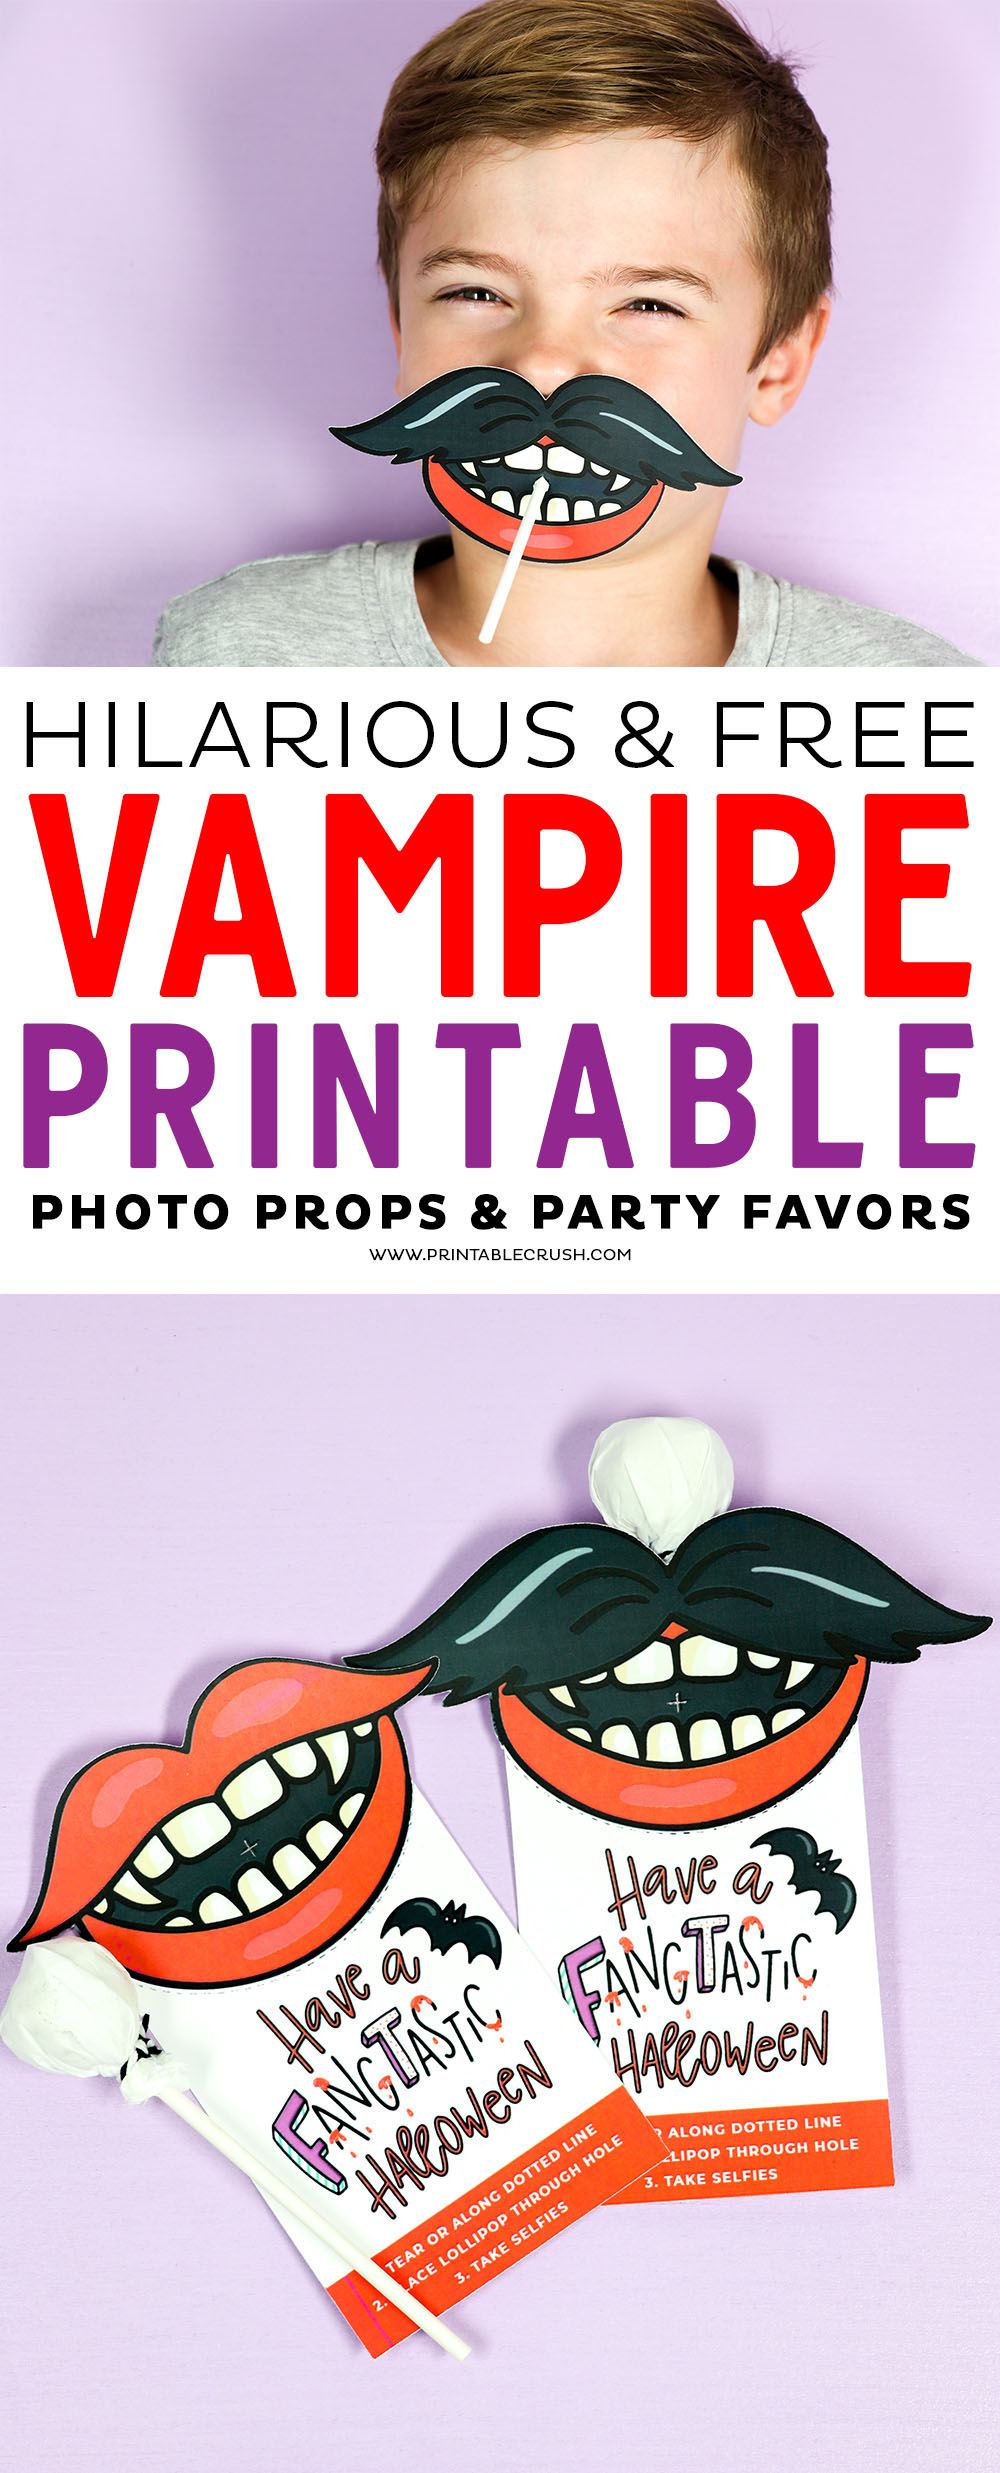 These FREE Vampire Halloween Printables are hilarious and perfect to give out for Halloween parties or trick or treat gifts! #vampireprintable #freehalloweenprintable #halloweenprintable #halloweenparty #halloweenphotoprops